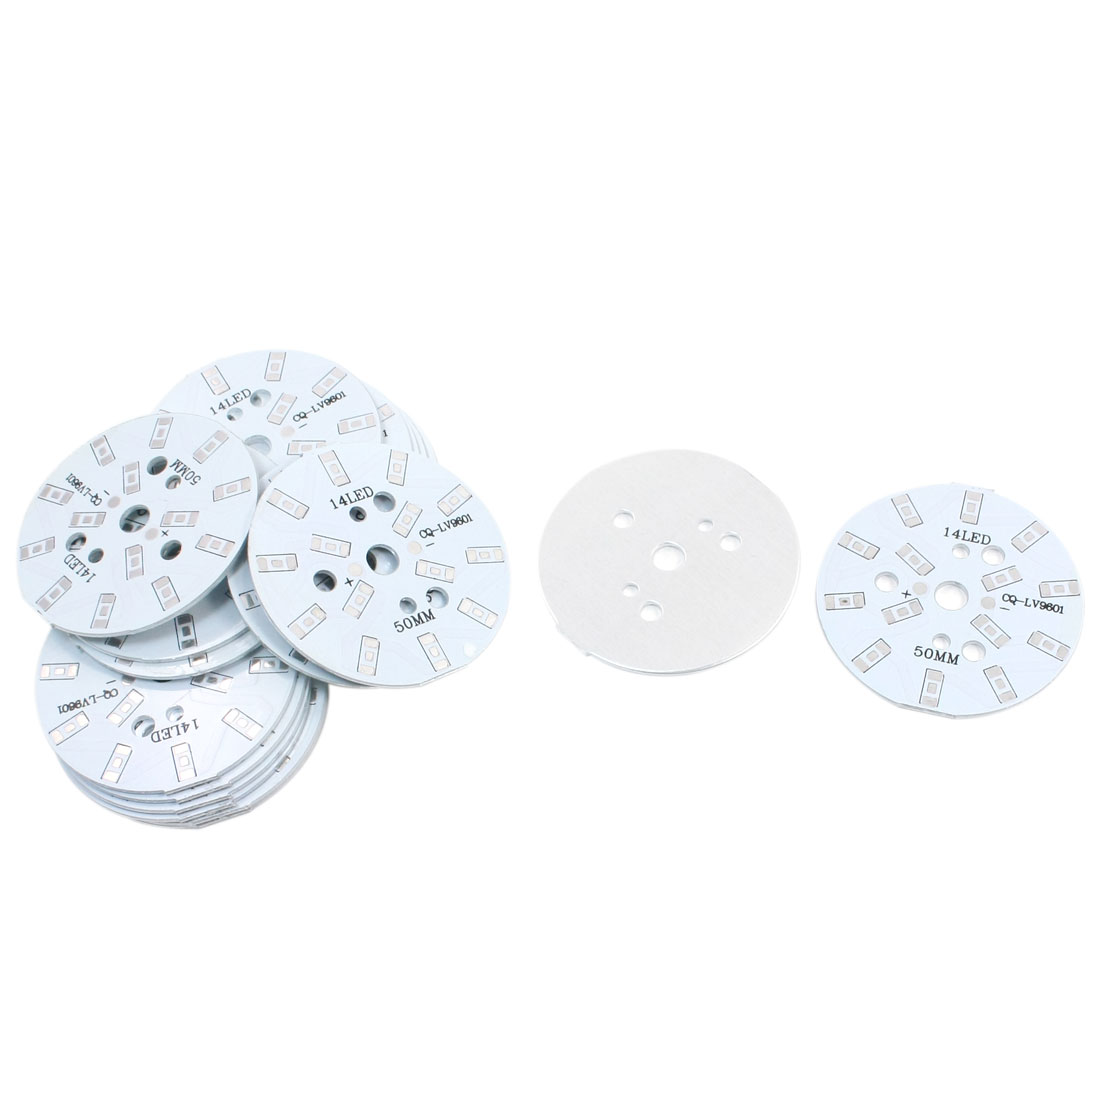 20Pcs 14 x 1/2W 5730 SMD LED High Power DIY Circle Aluminum PCB Circuit Board 50mm Diameter